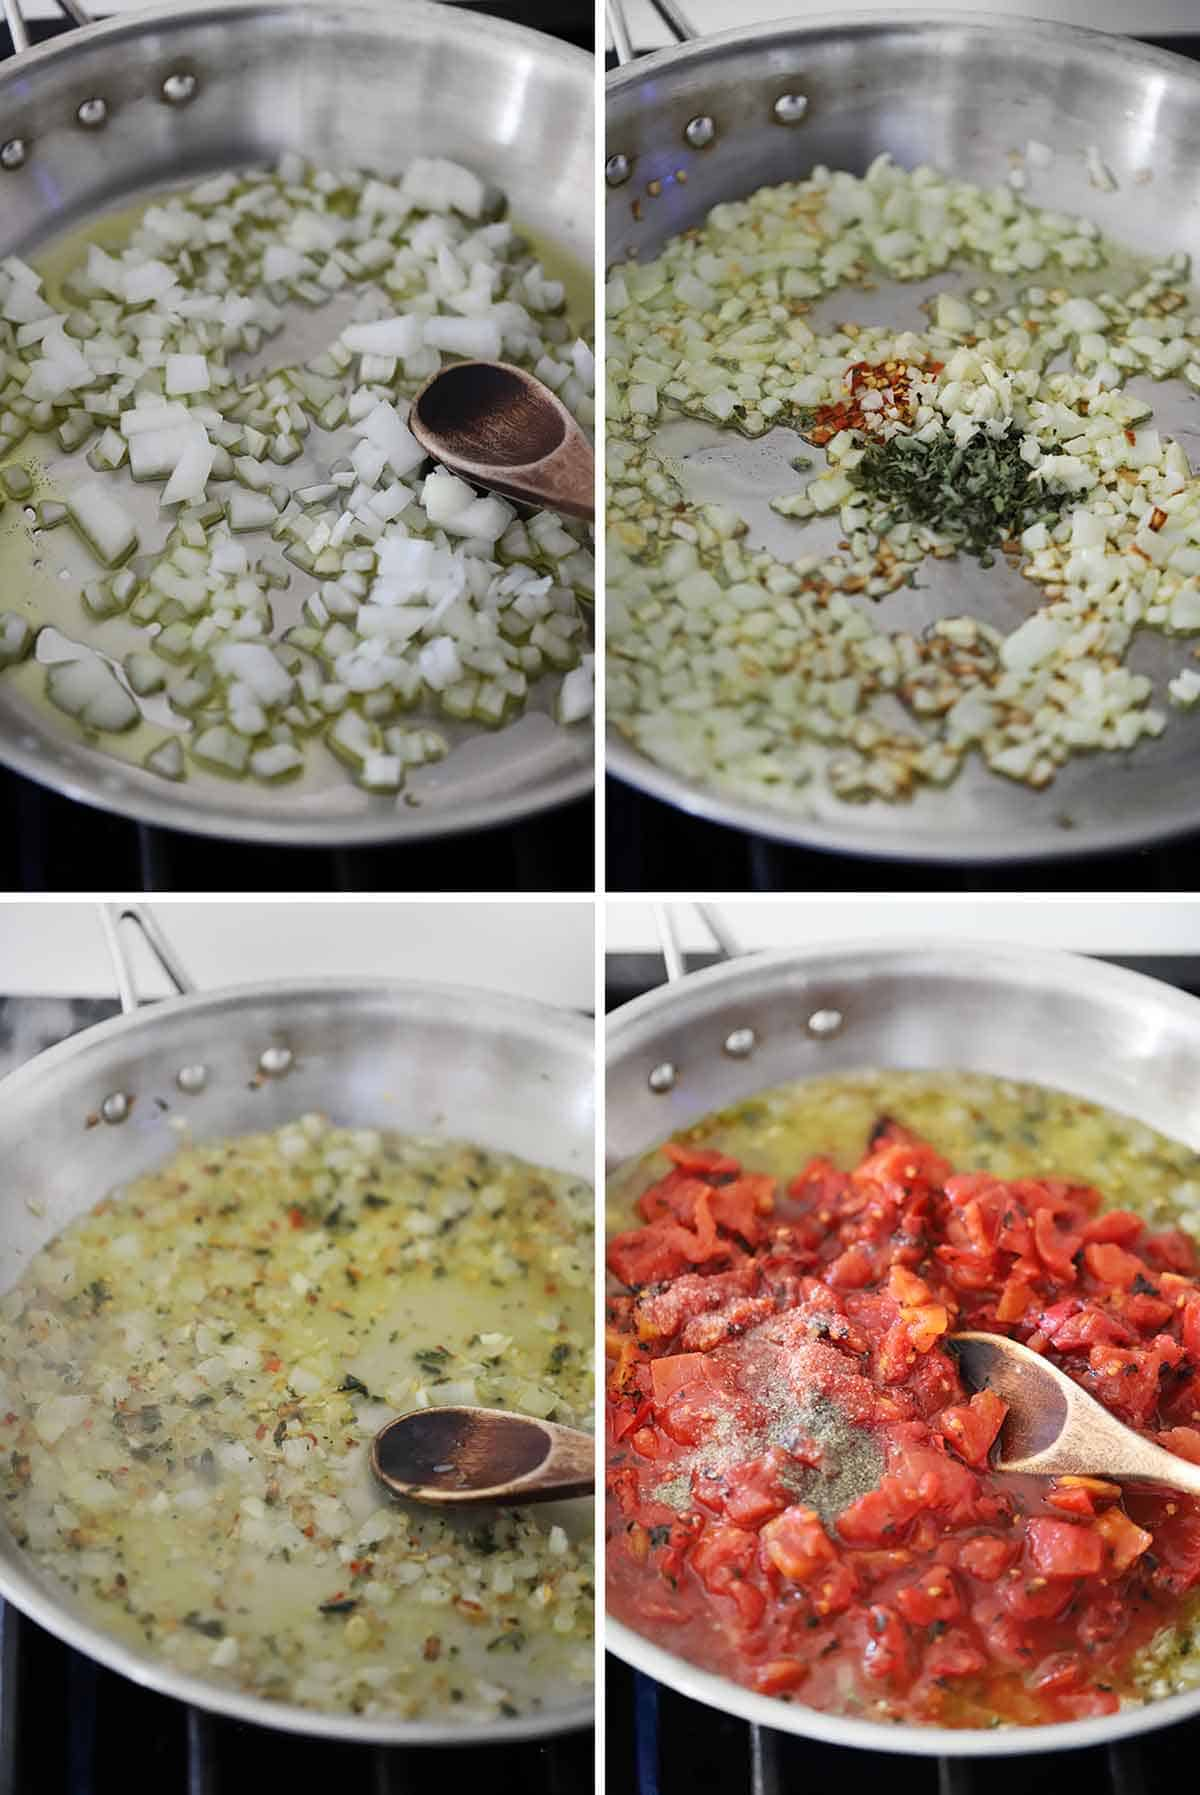 Process collage showing sautéing onions with garlic and herbs and adding diced tomatoes in a skillet.